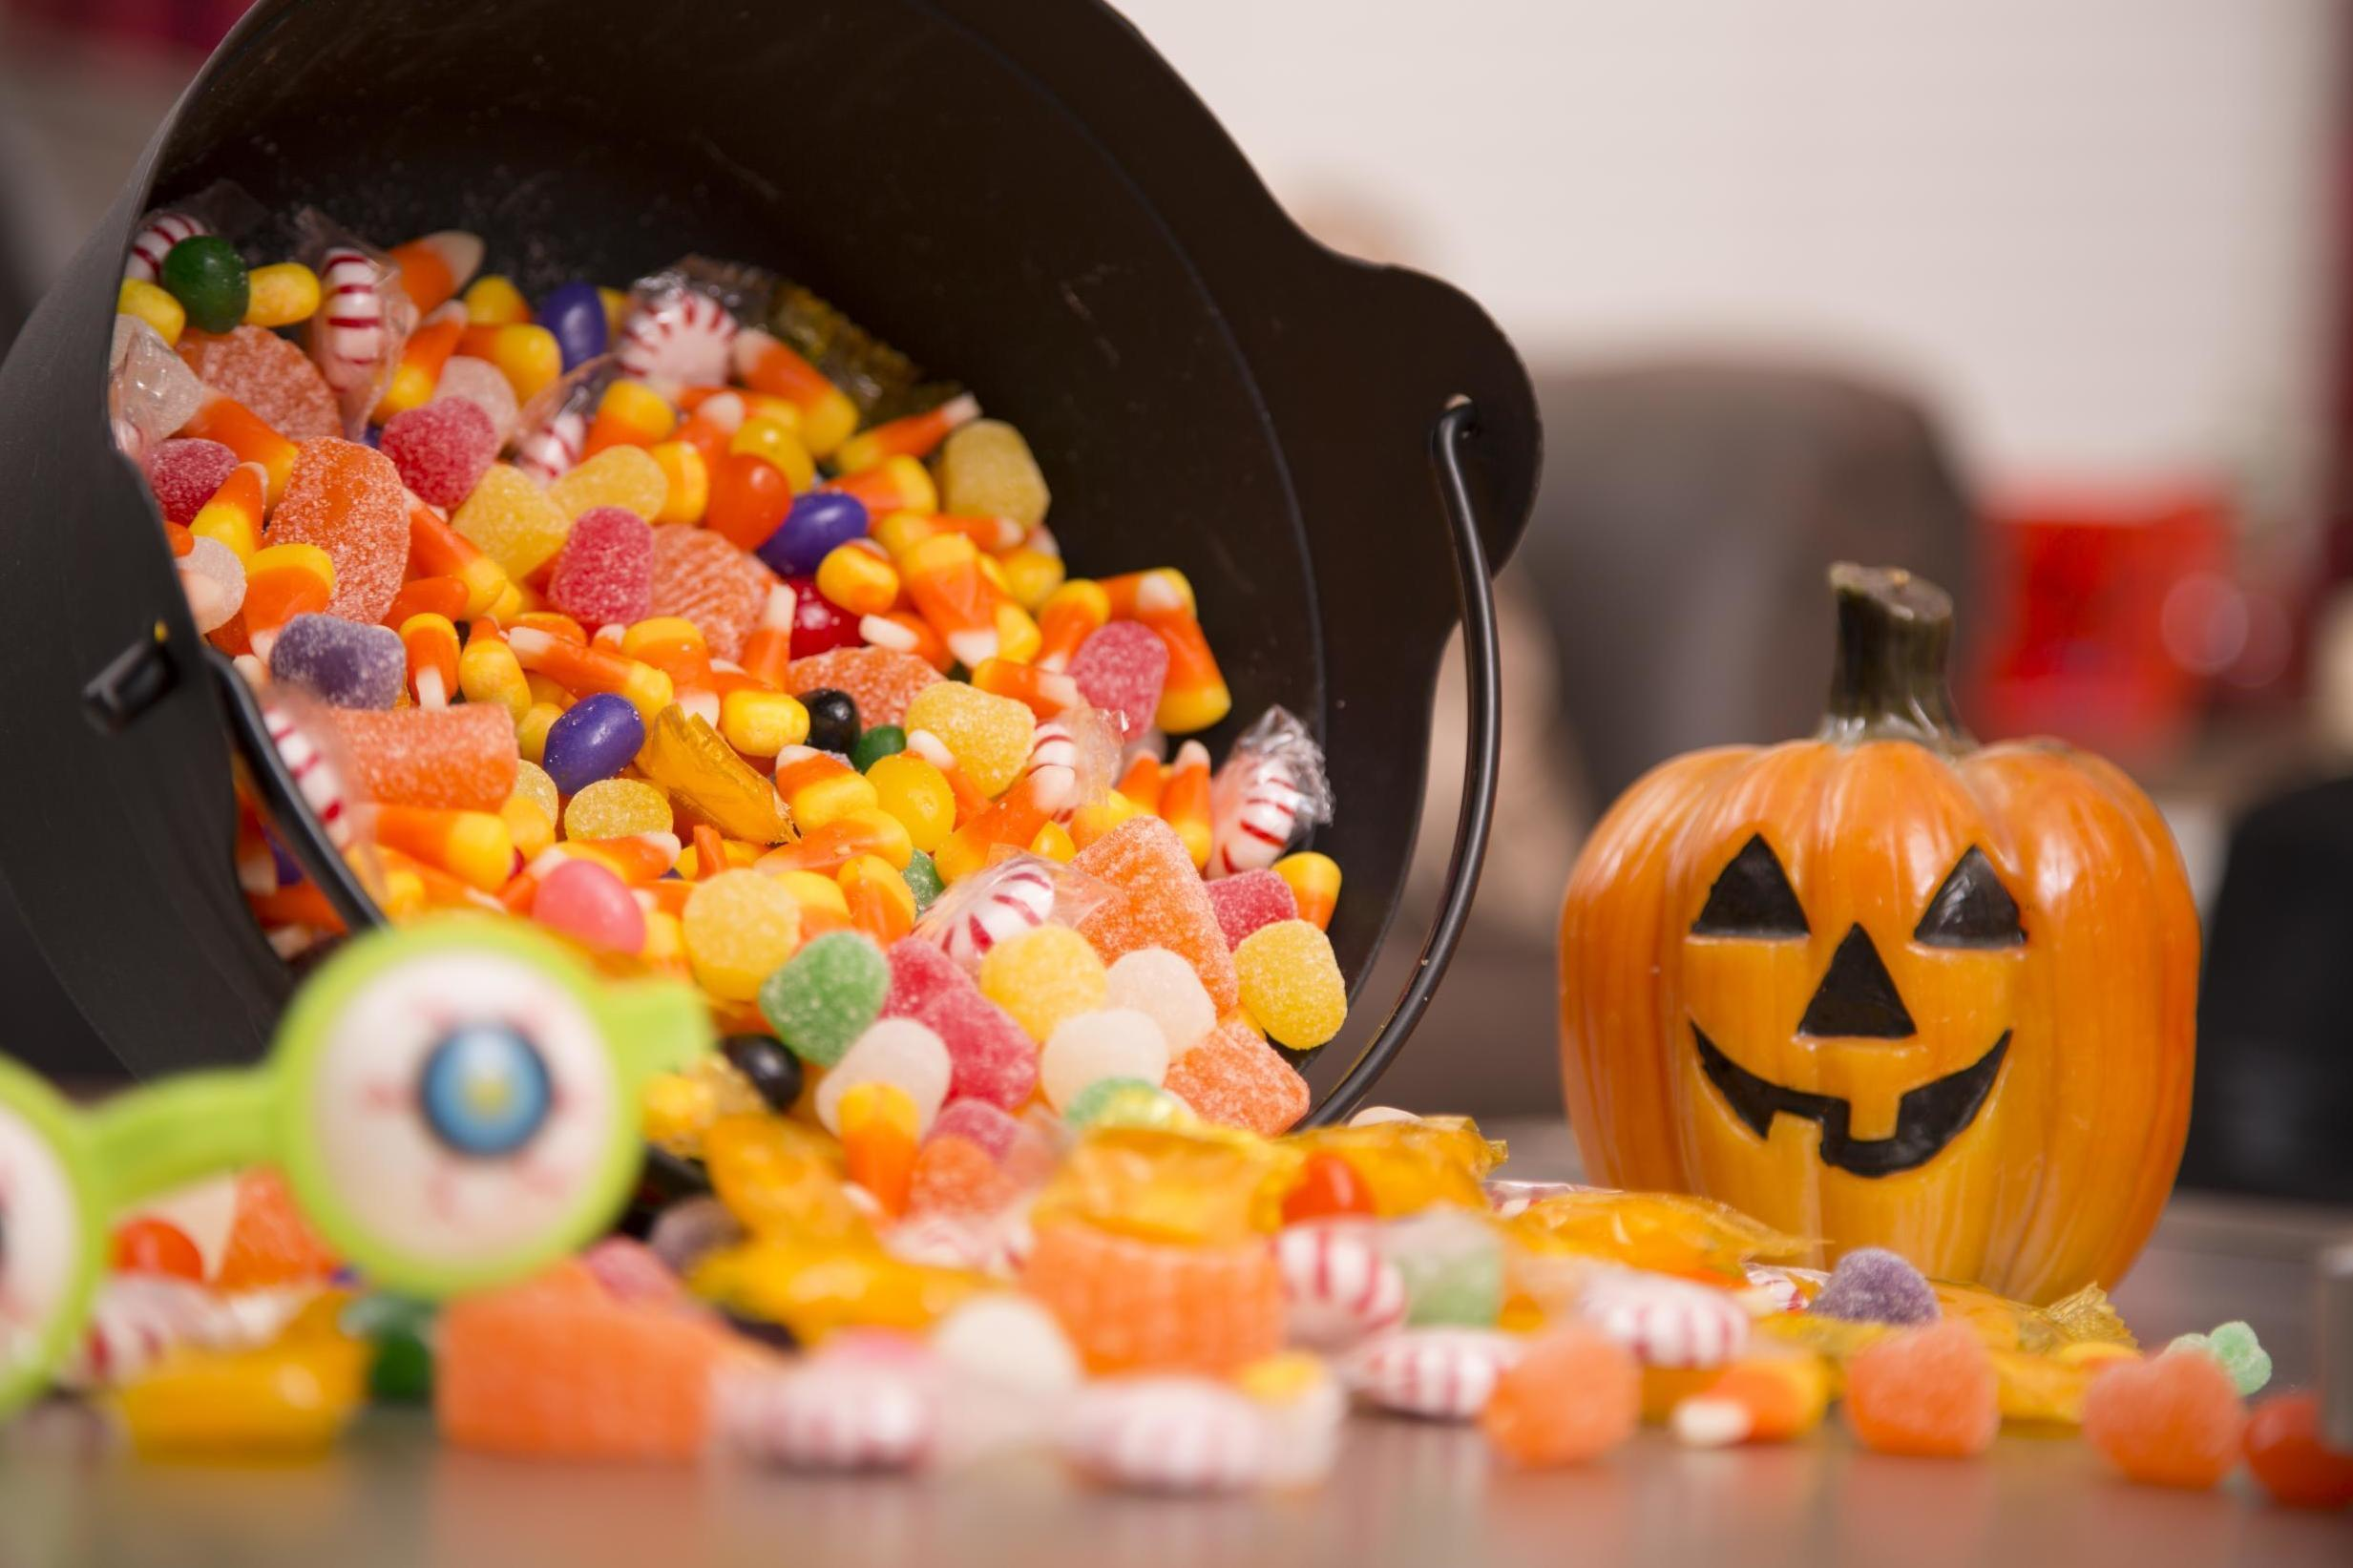 Why you should eat your Halloween candy all at once, according to dentists 1